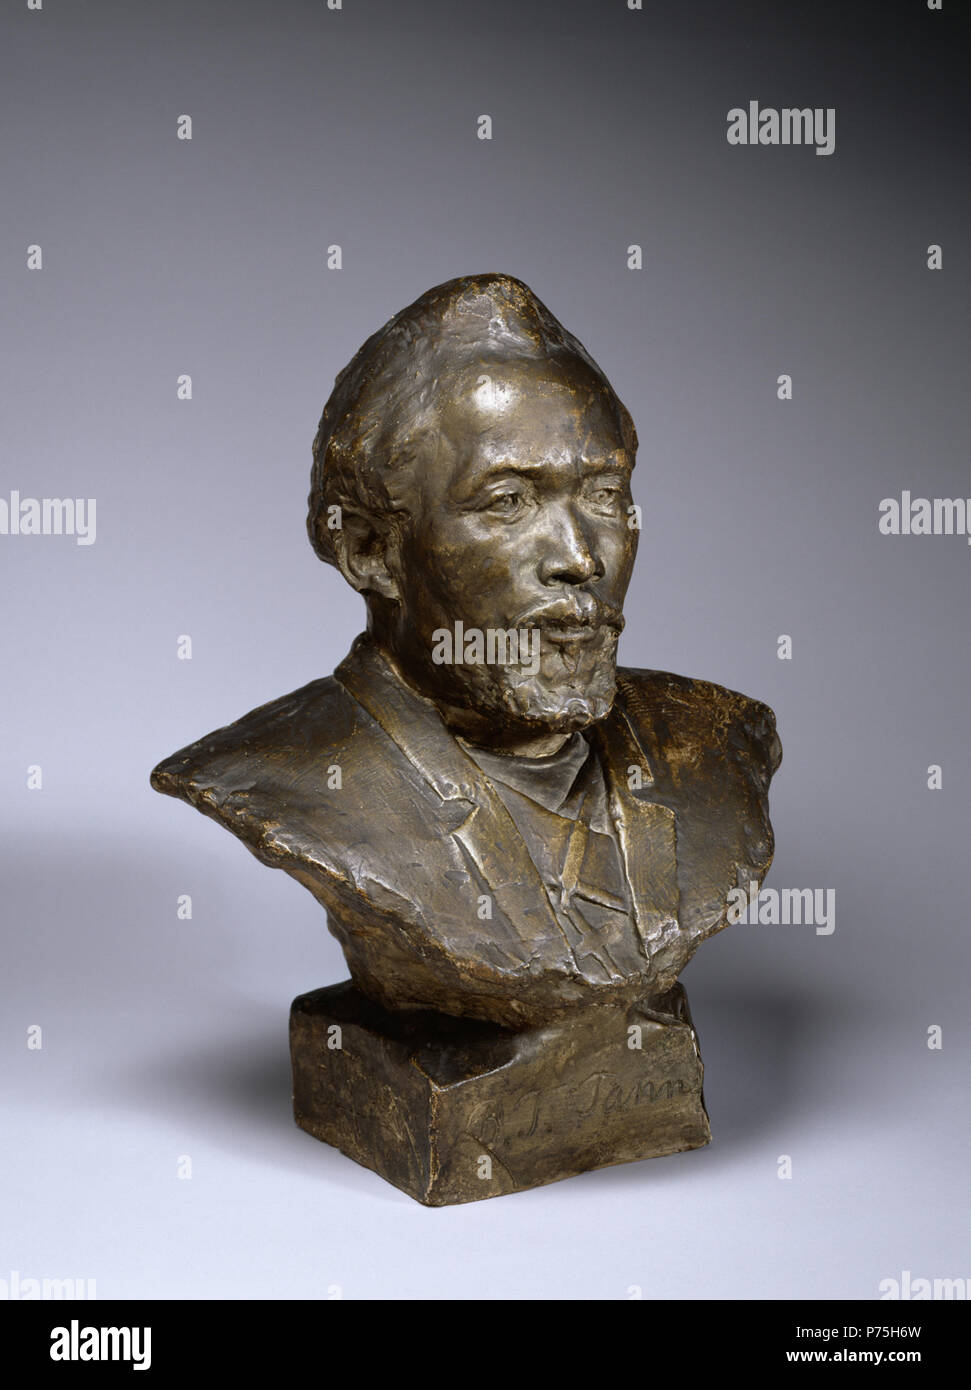 Henry Ossawa Tanner (American, 1859-1937). 'Bust of Benjamin Tucker Tanner,' 1894. patinated plaster. Walters Art Museum (28.33): Museum purchase with funds provided by the Eddie and Sylvia Brown Challenge Grant for the Acquistion of African American Art and the estate of Anna Fehl, 2004. 140 Henry Ossawa Tanner - Bust of Benjamin Tucker Tanner - Walters 2833 - Three Quarter Stock Photo